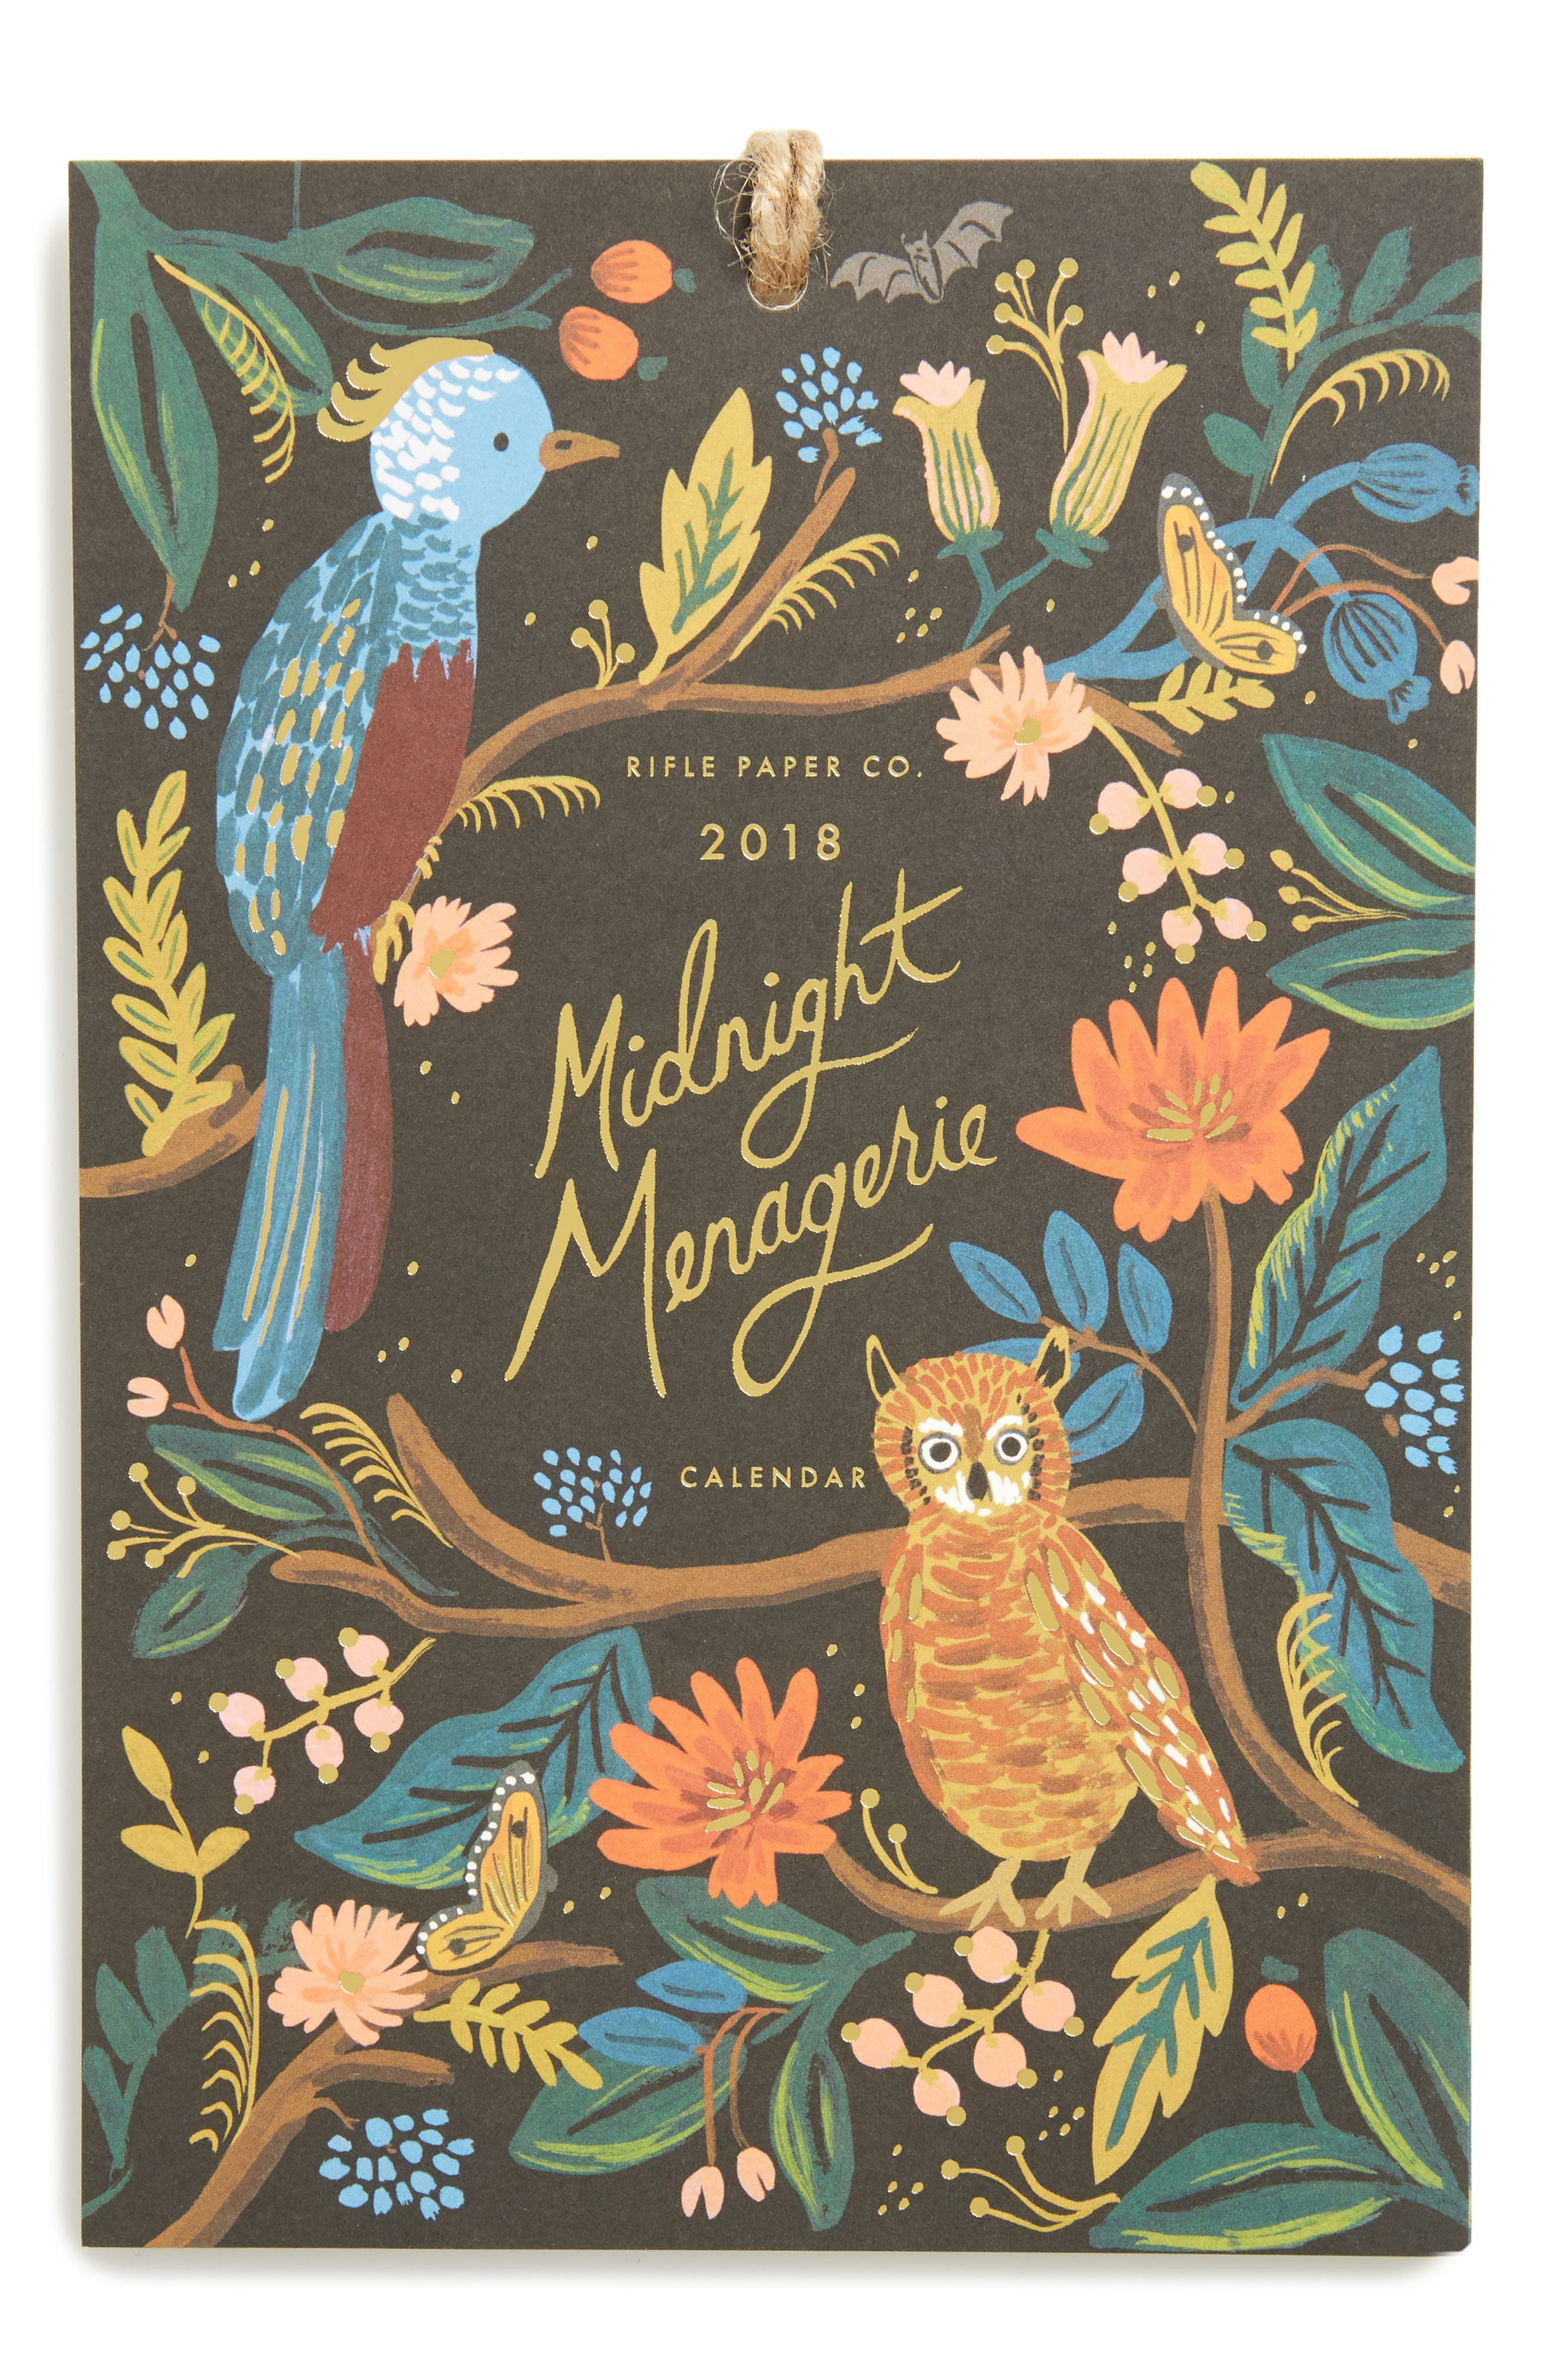 Rifle Paper Co. 2018 Midnight Menagerie Calendar